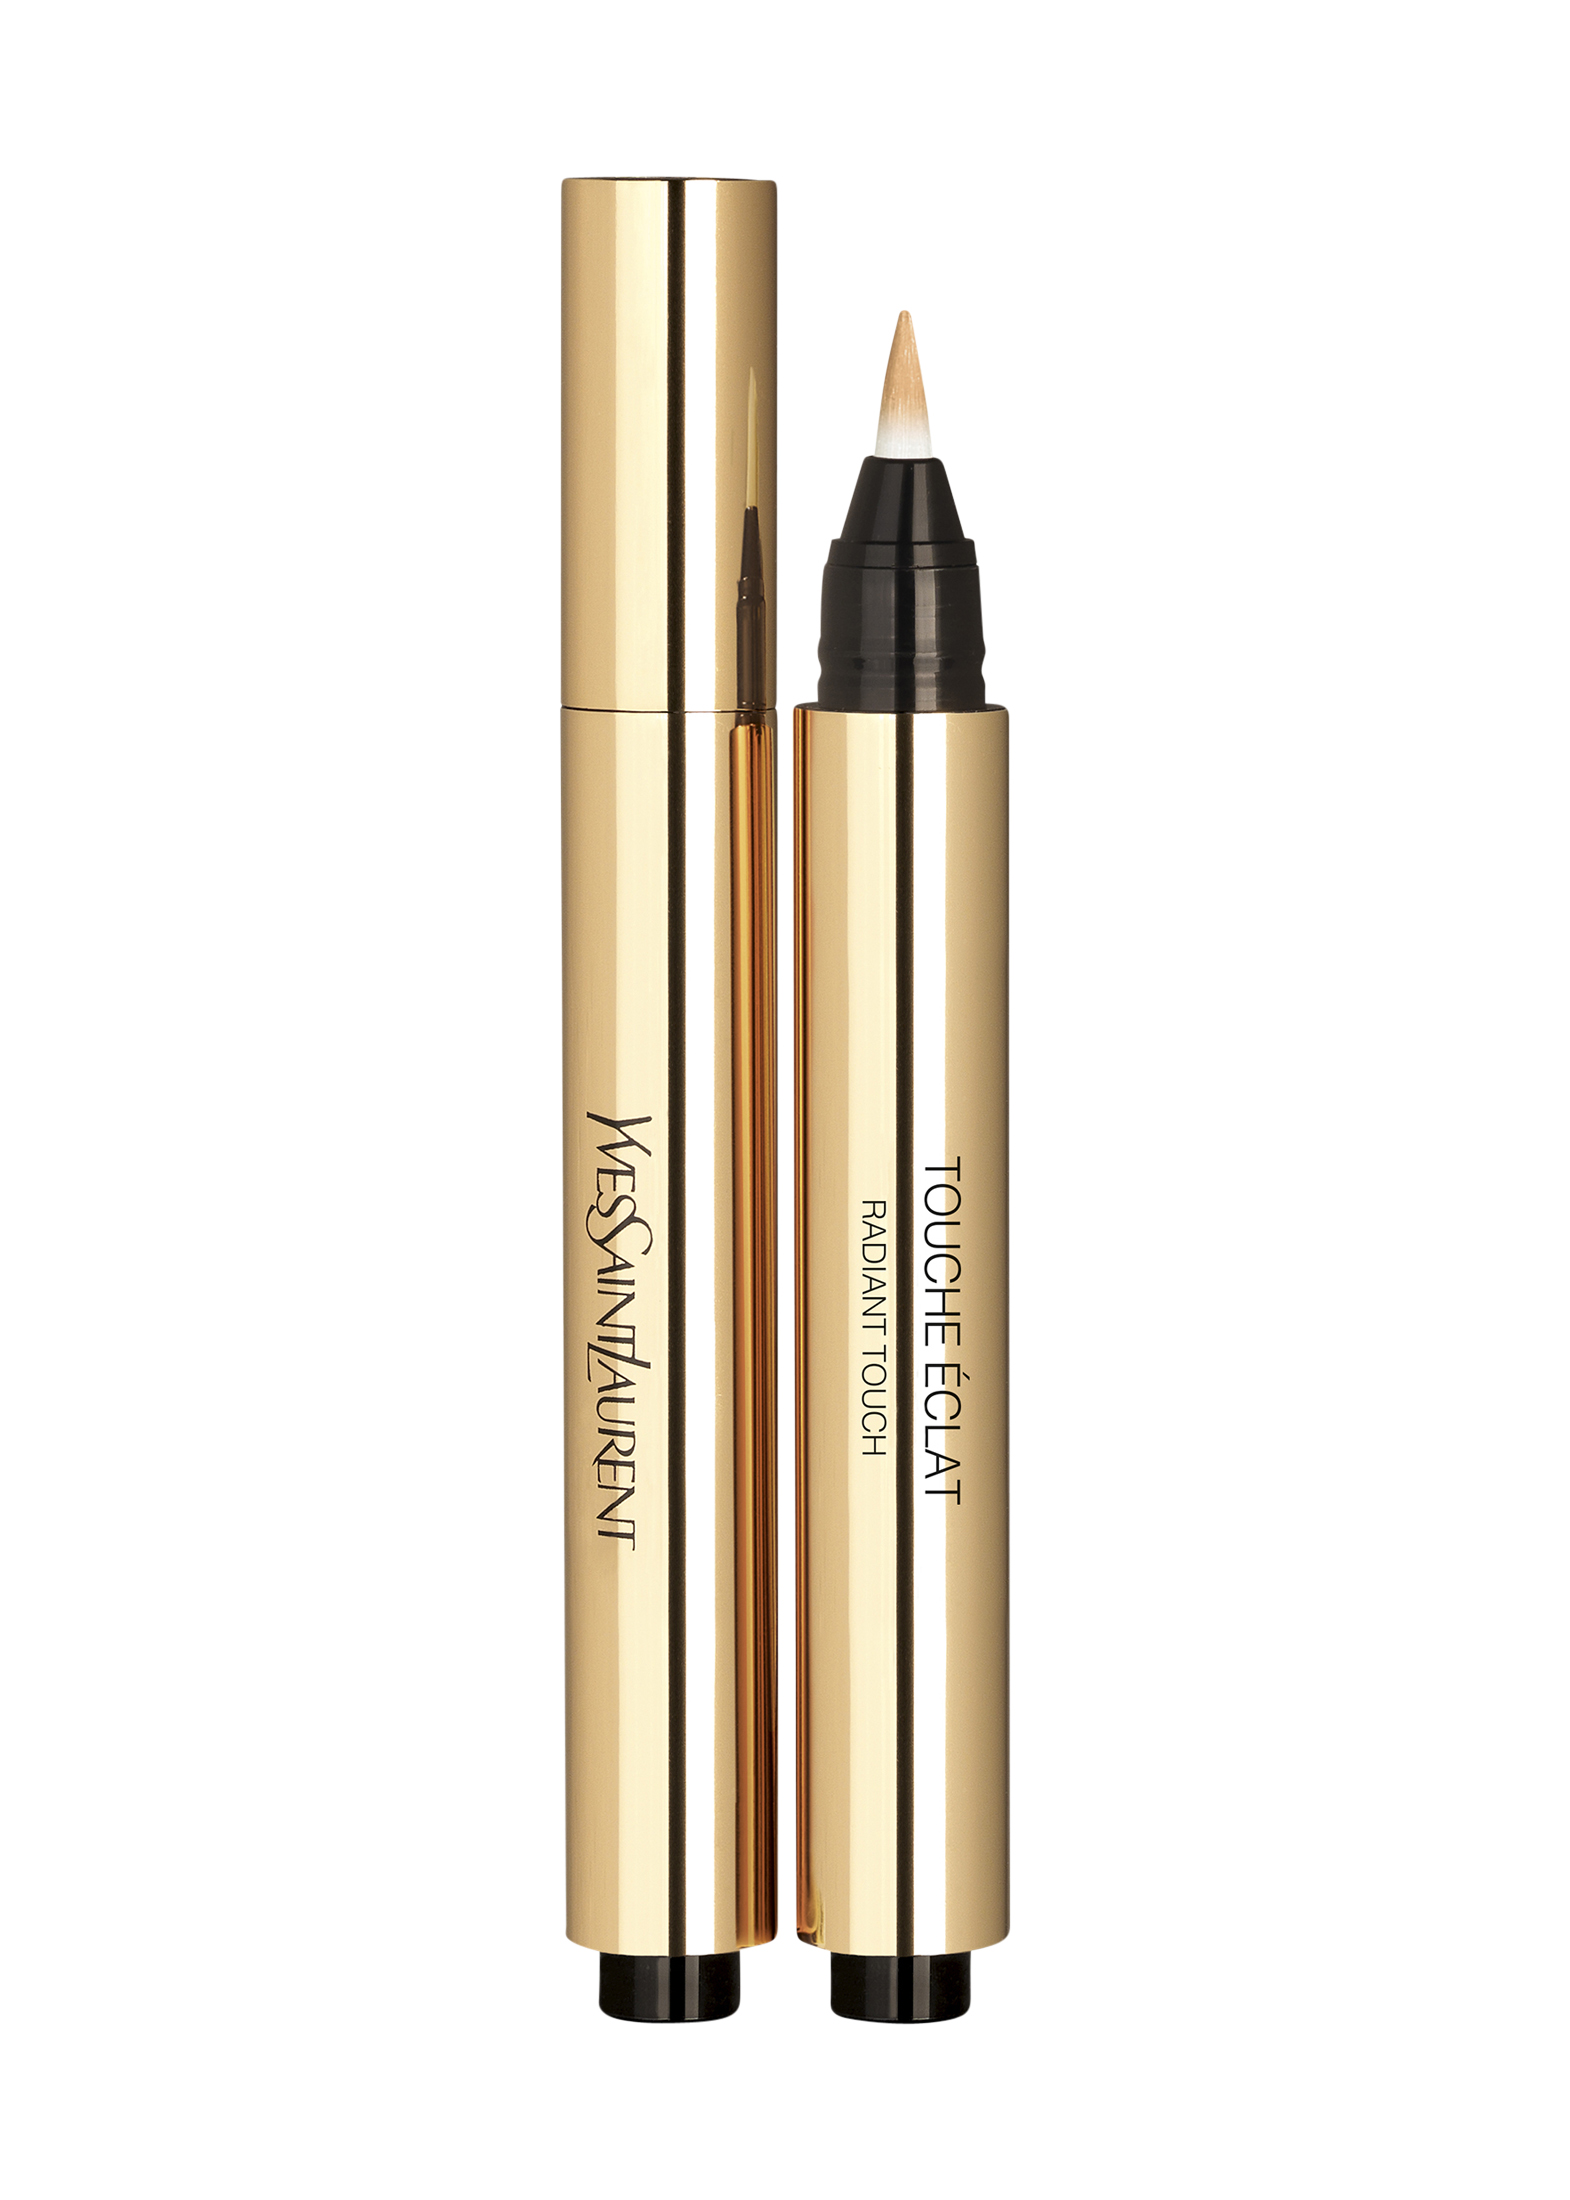 YSL, TOUCHE ECLAT image number 0